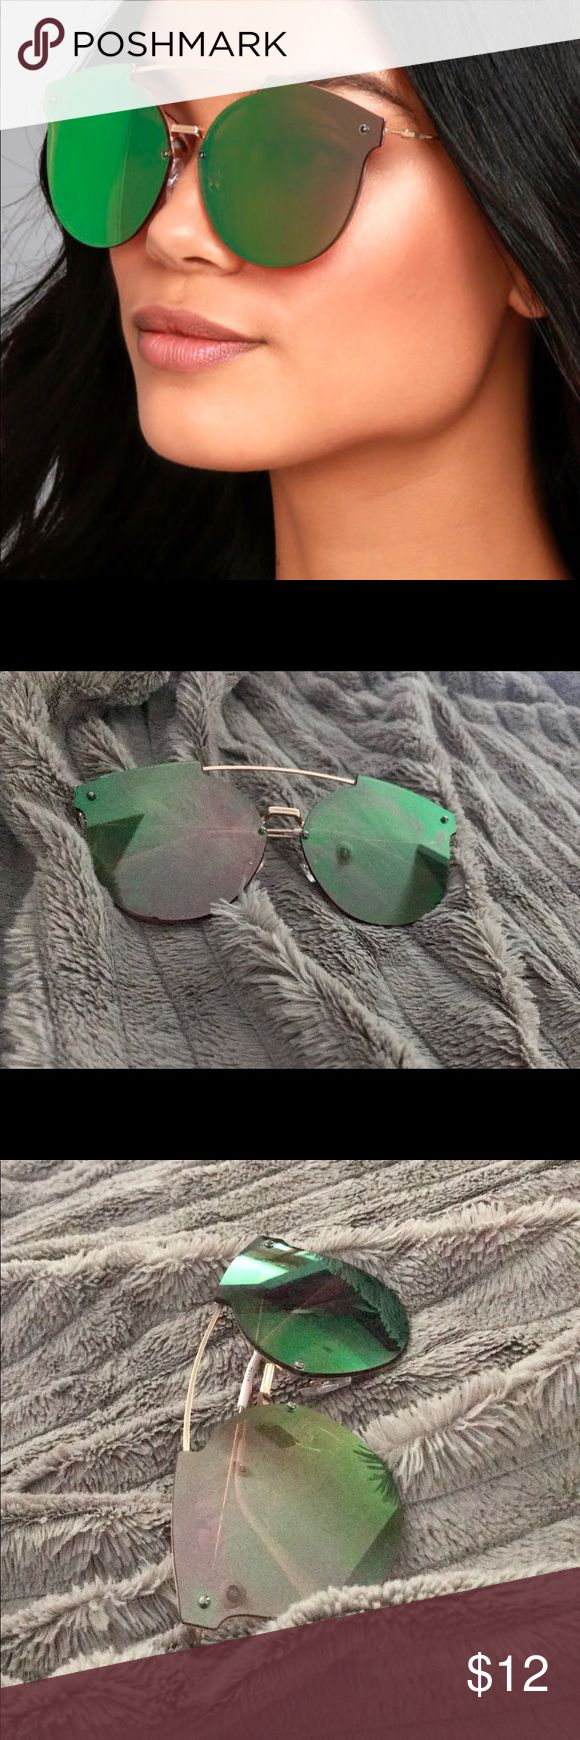 Gold  Mirrored Sunglasses Gold frameless pink mirrored sunglasses that flash green. Curved bridge. Accessories Sunglasses